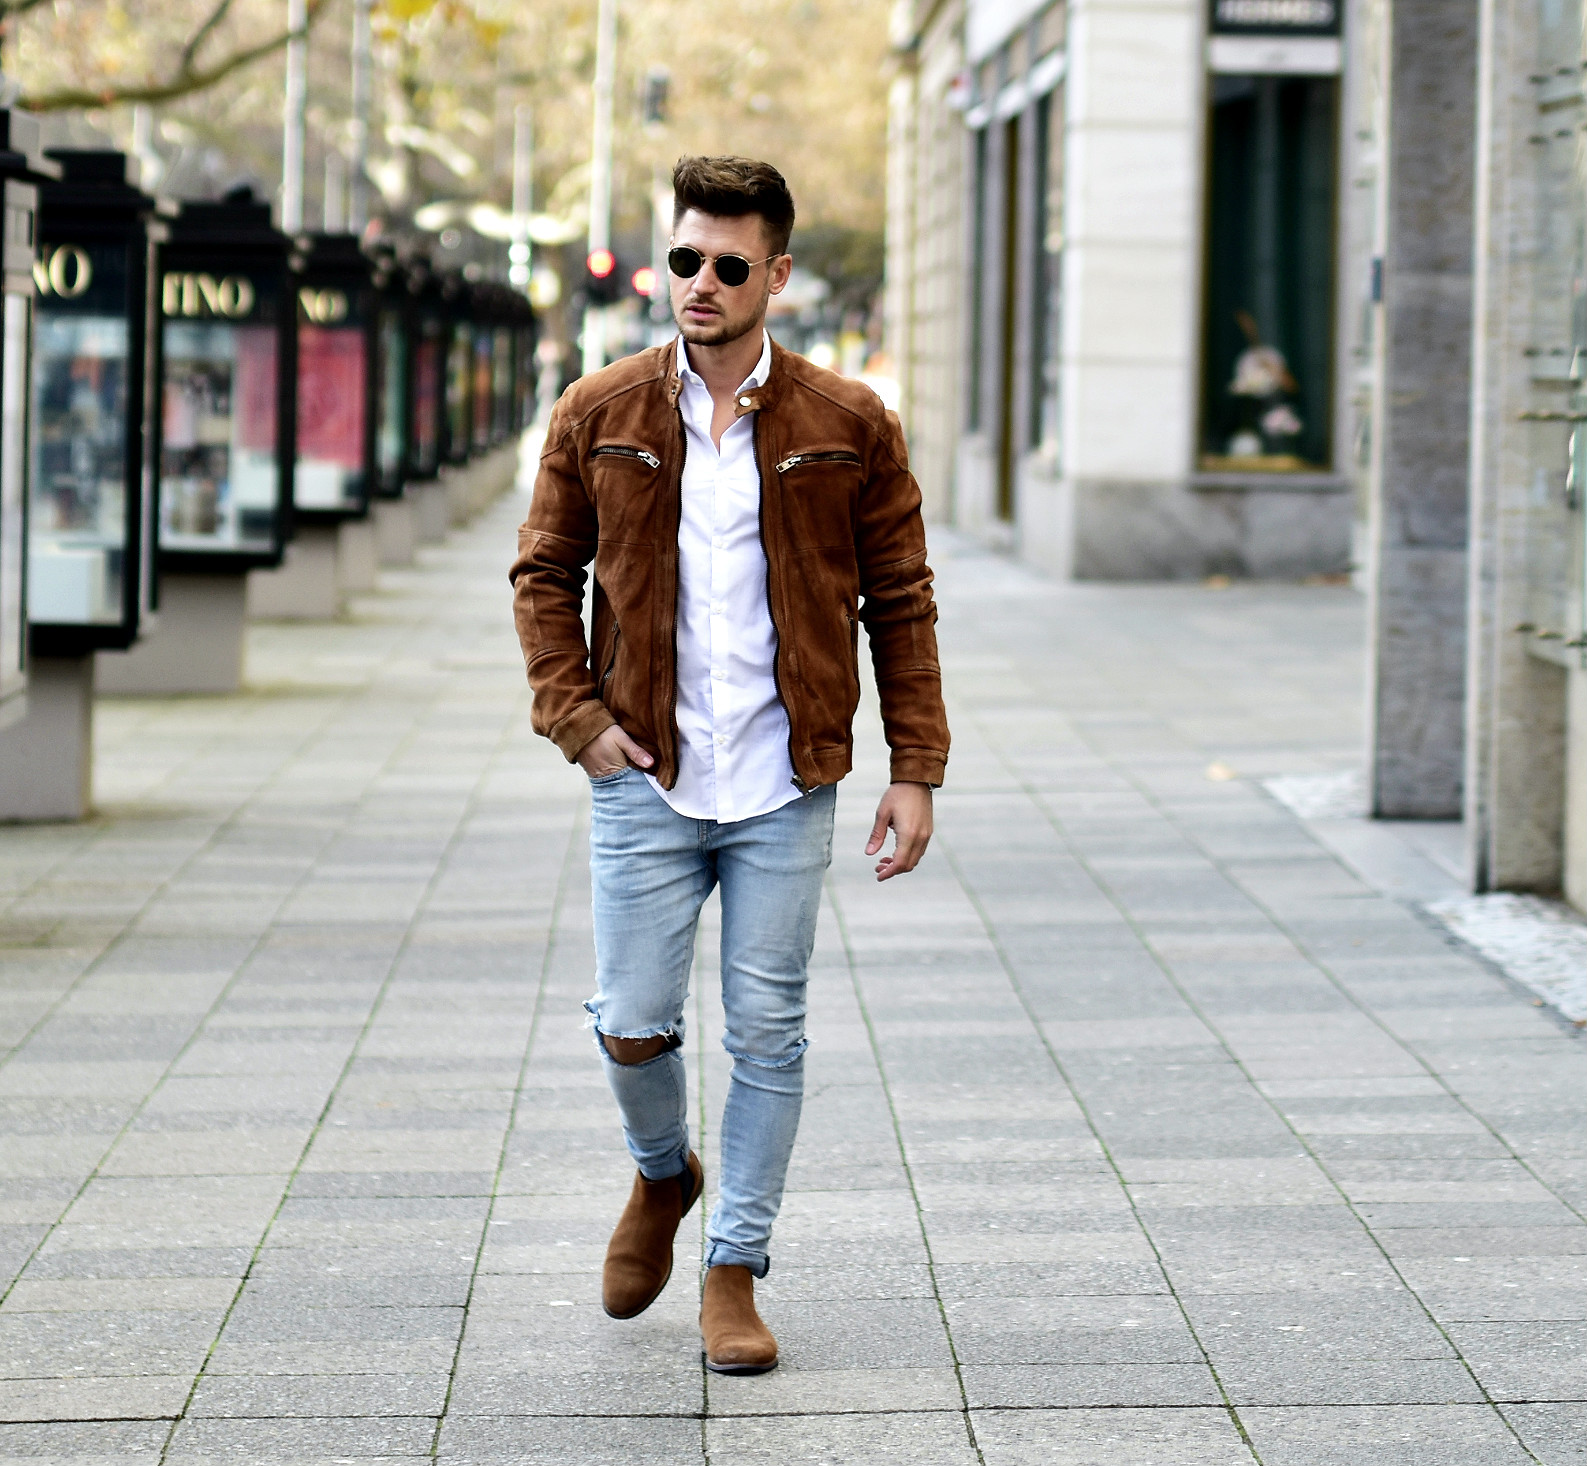 tommeezjerry-styleblog-maennerblog-maenner-modeblog-berlin-berlinblog-maennermodeblog-outfit-lederjacke-beedgy-movado-chelsea-boots-2